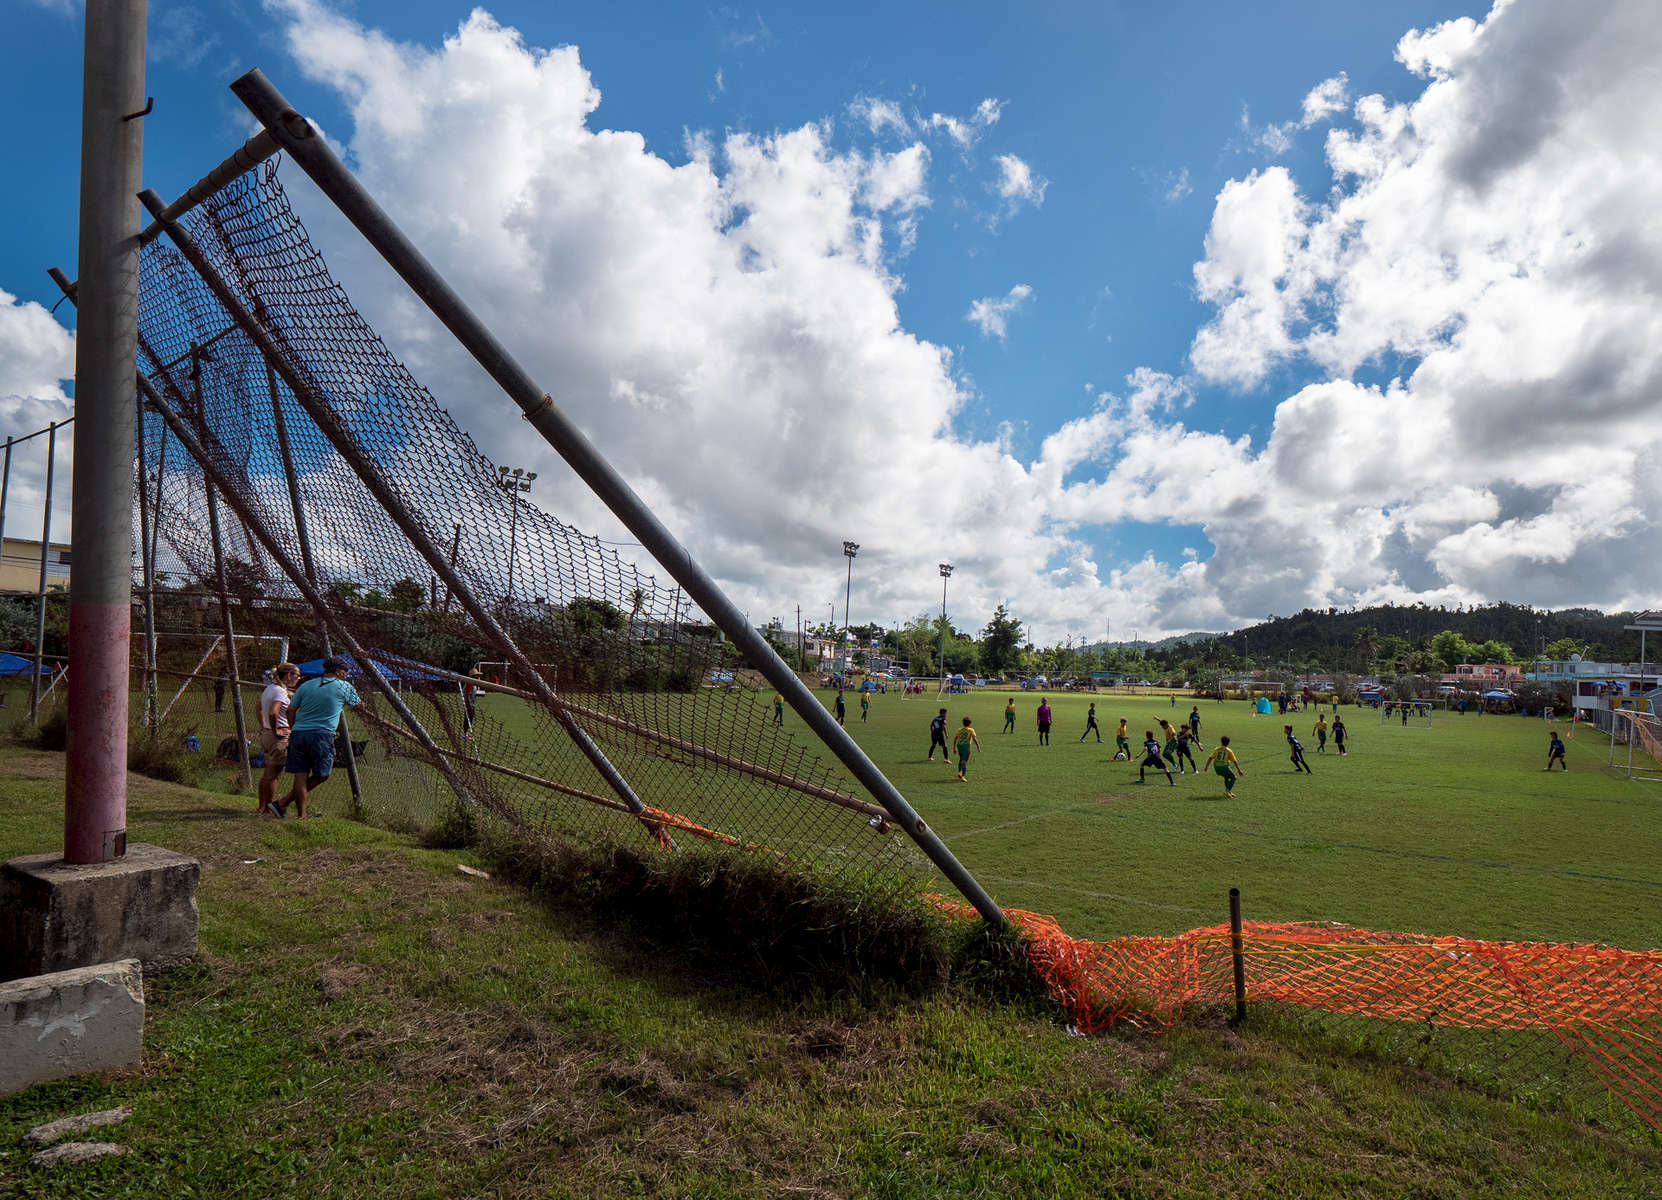 CAGUAS, PUERTO RICO - NOVEMBER 10: Little League Soccer players compete by a fallen fence caused by Hurricane Maria on November 10, 2018 in Caguas, Puerto Rico. The effort continues in Puerto Rico to remain and rebuild more than one year after the Hurricane Maria hit and devastated the island on September 20, 2017. The official number of deaths from the disaster is 2,975.